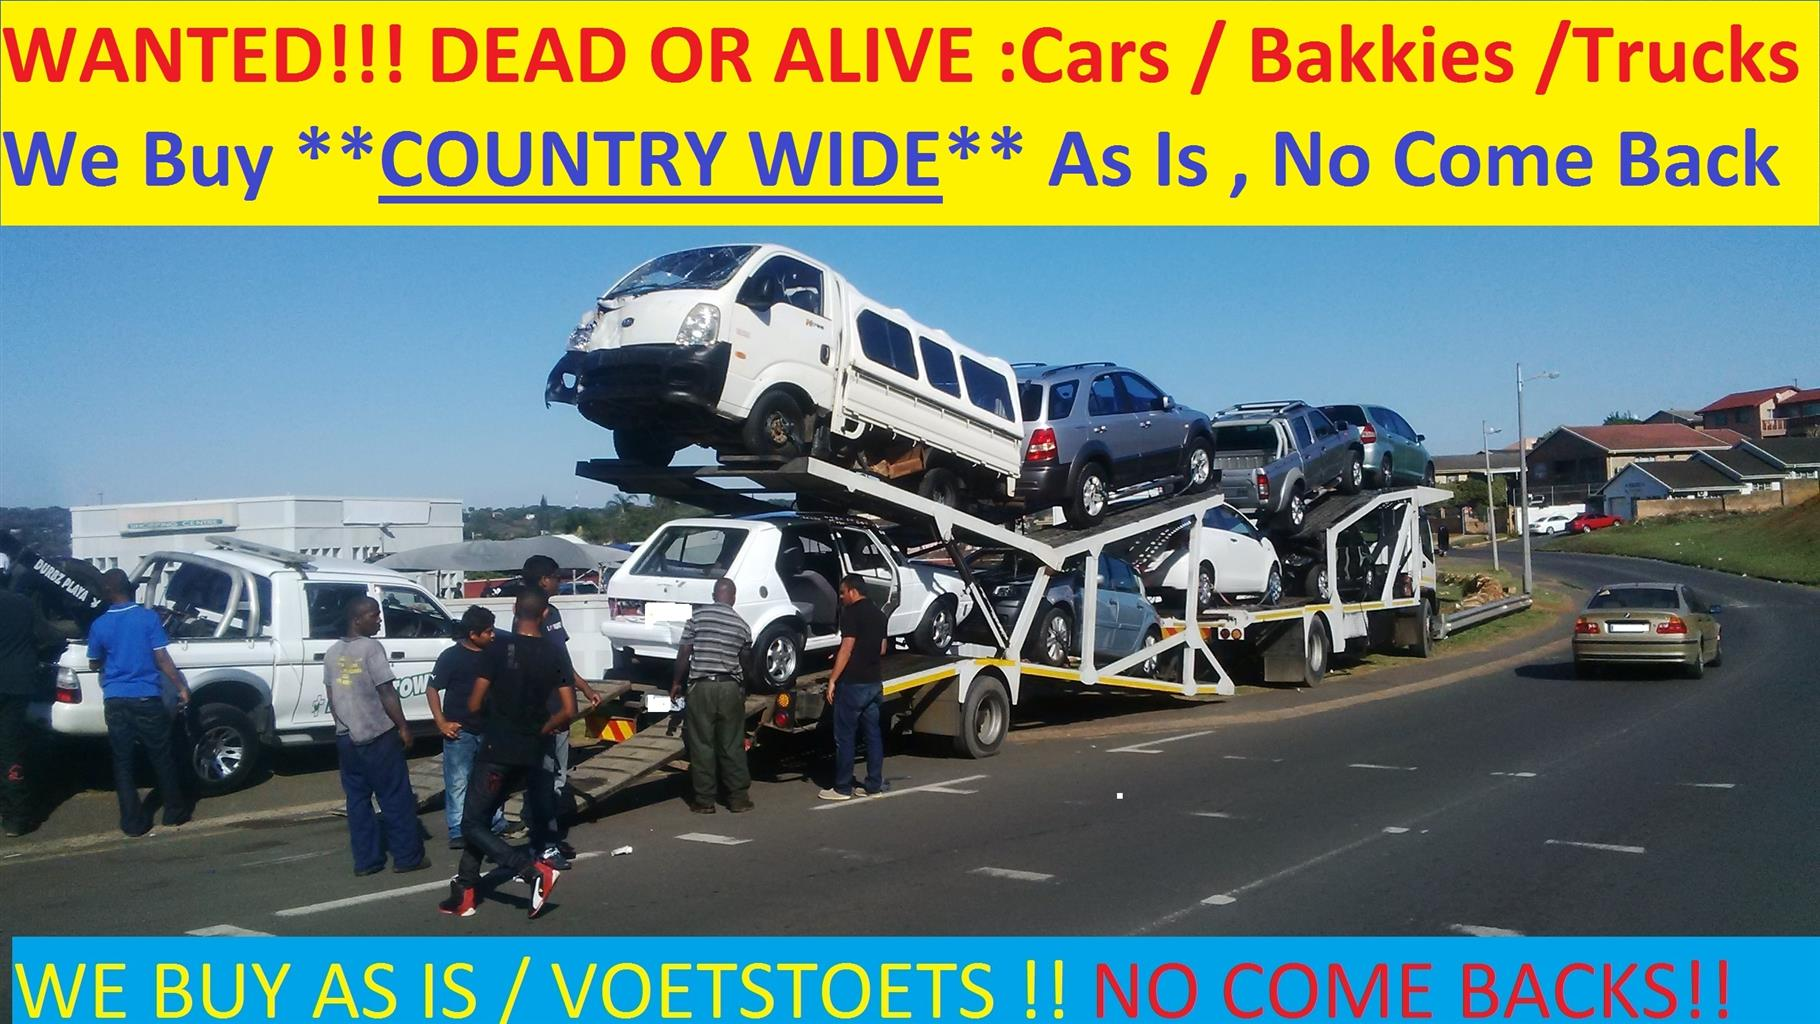 Cash paid on the spot for cars and bakkies